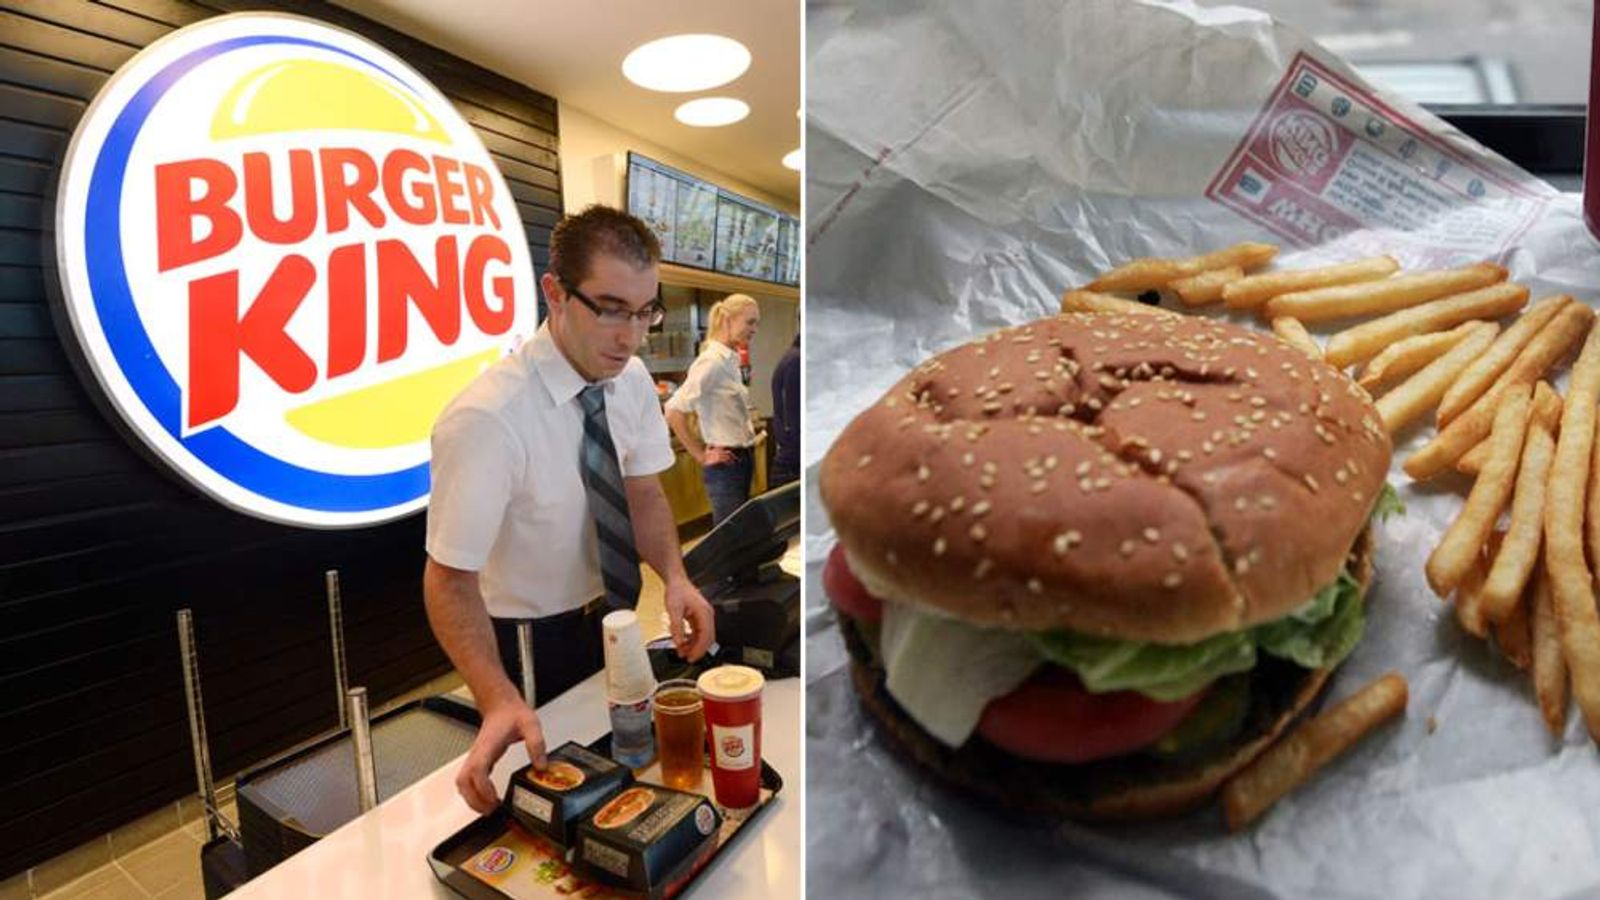 A Burger King employee serves up a tray of food.